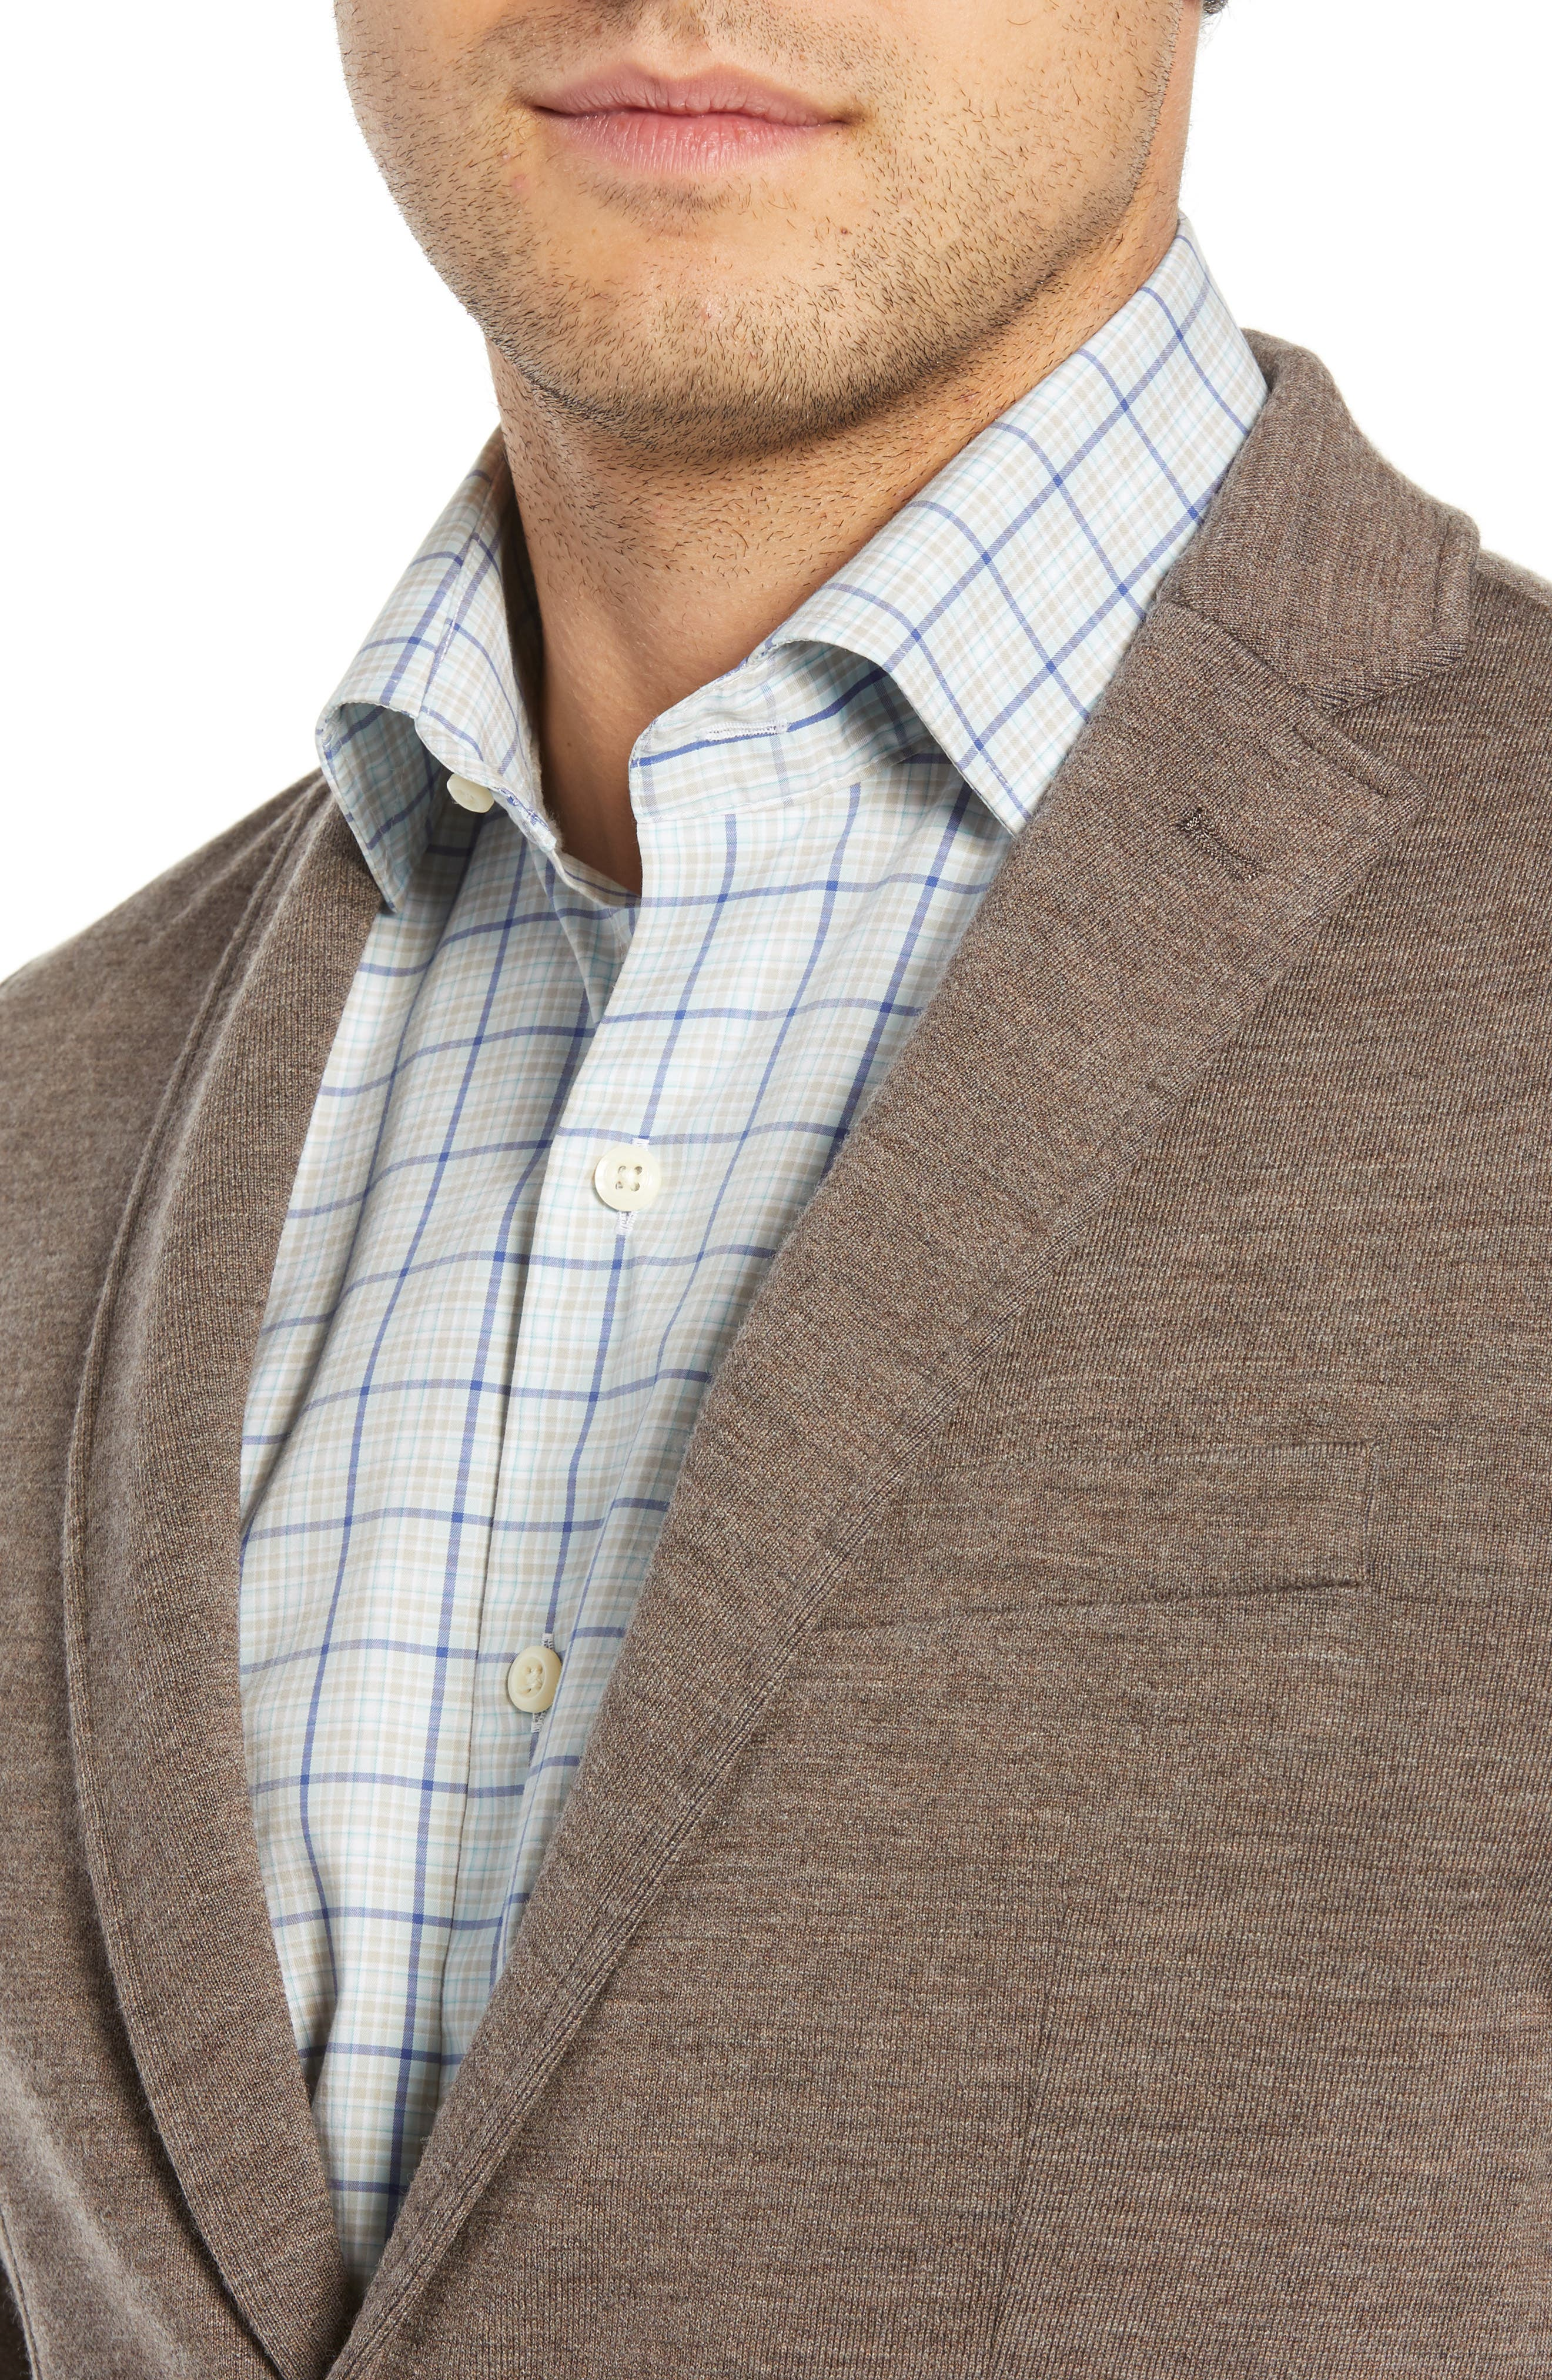 Crown Comfort Knit Blazer,                             Alternate thumbnail 4, color,                             COBBLESTONE